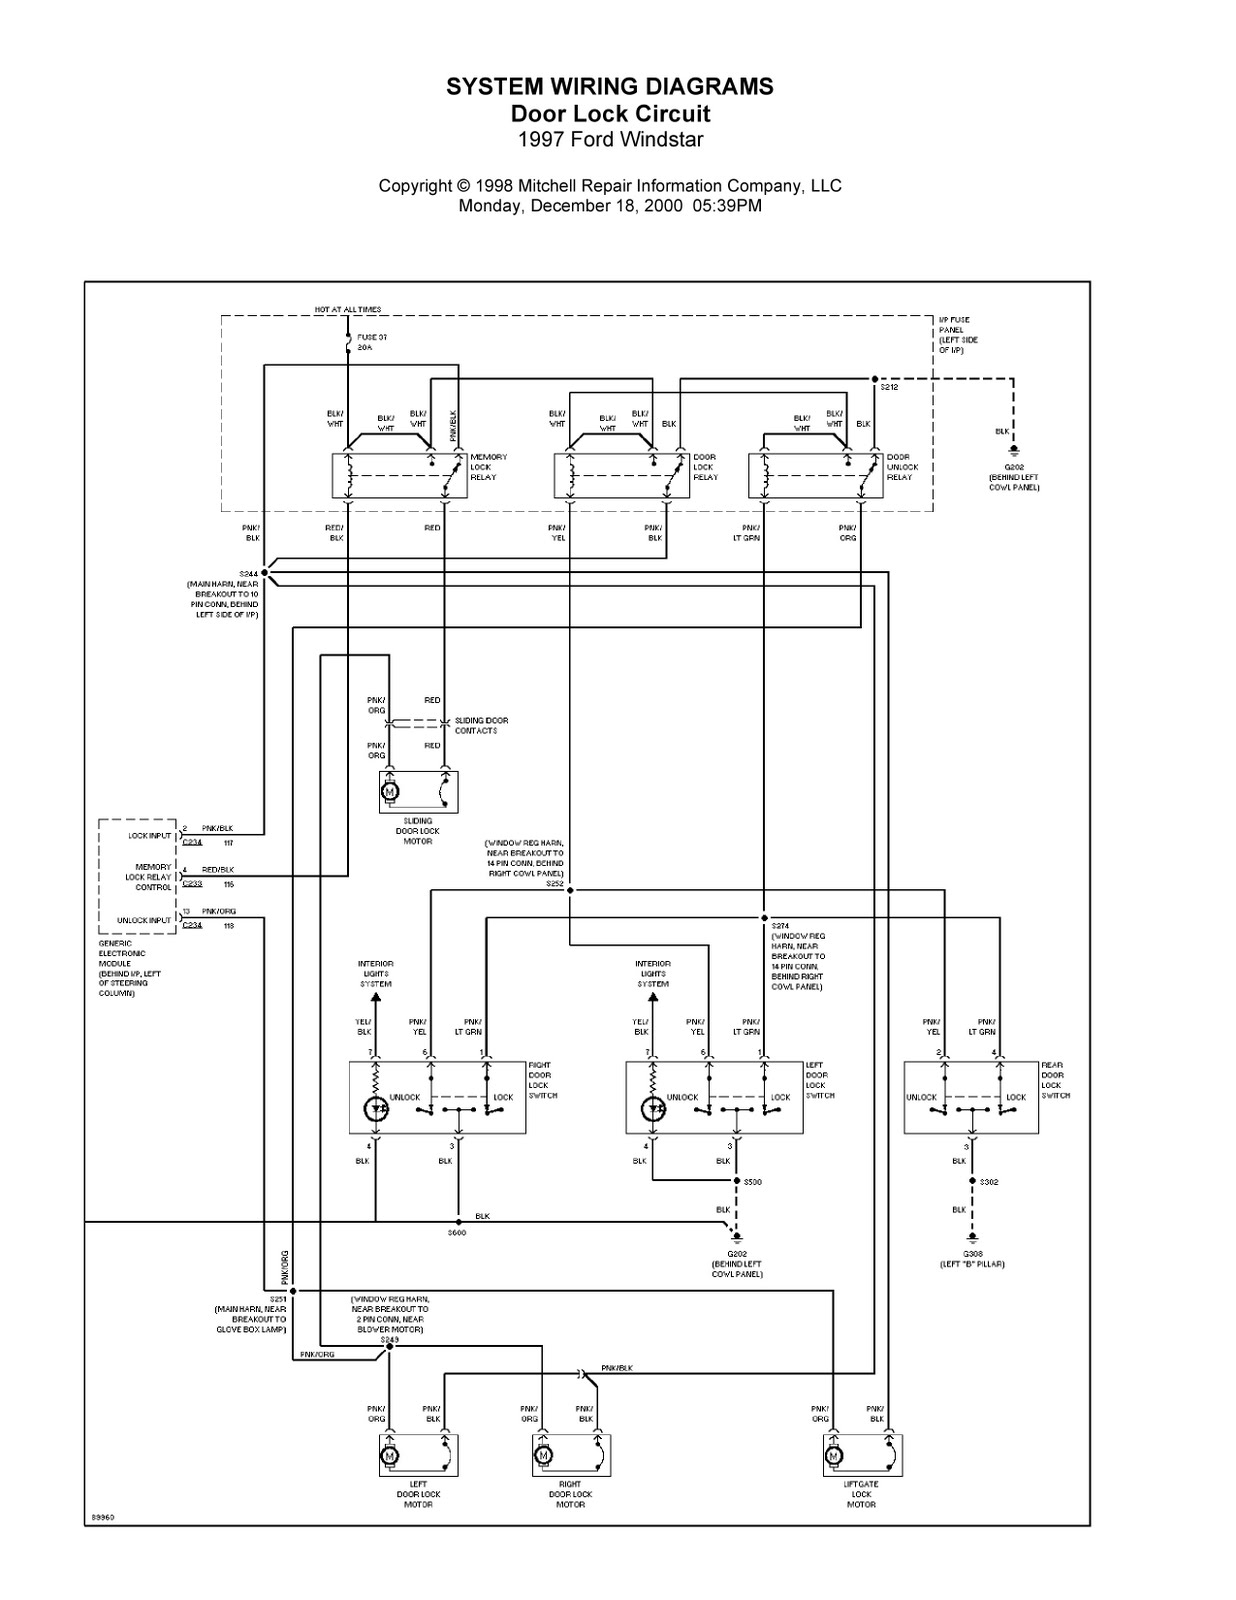 1997 Ford Windstar Complete System Wiring Diagrams | Wiring ... Instrument Cluster Wiring Diagram Ford on ford instrument cluster pinout diagram, mercedes instrument cluster wiring diagram, 1991 mustang wiring diagram, ford instrument cluster voltage regulator, ford e-150 wiring-diagram, audi instrument cluster wiring diagram, 1965 mustang instrument cluster wiring diagram, ford instrument cluster lights, 1988 mustang gt fuel pump wiring diagram, jeep tj instrument cluster wiring diagram, 1997 f150 stereo wiring diagram,